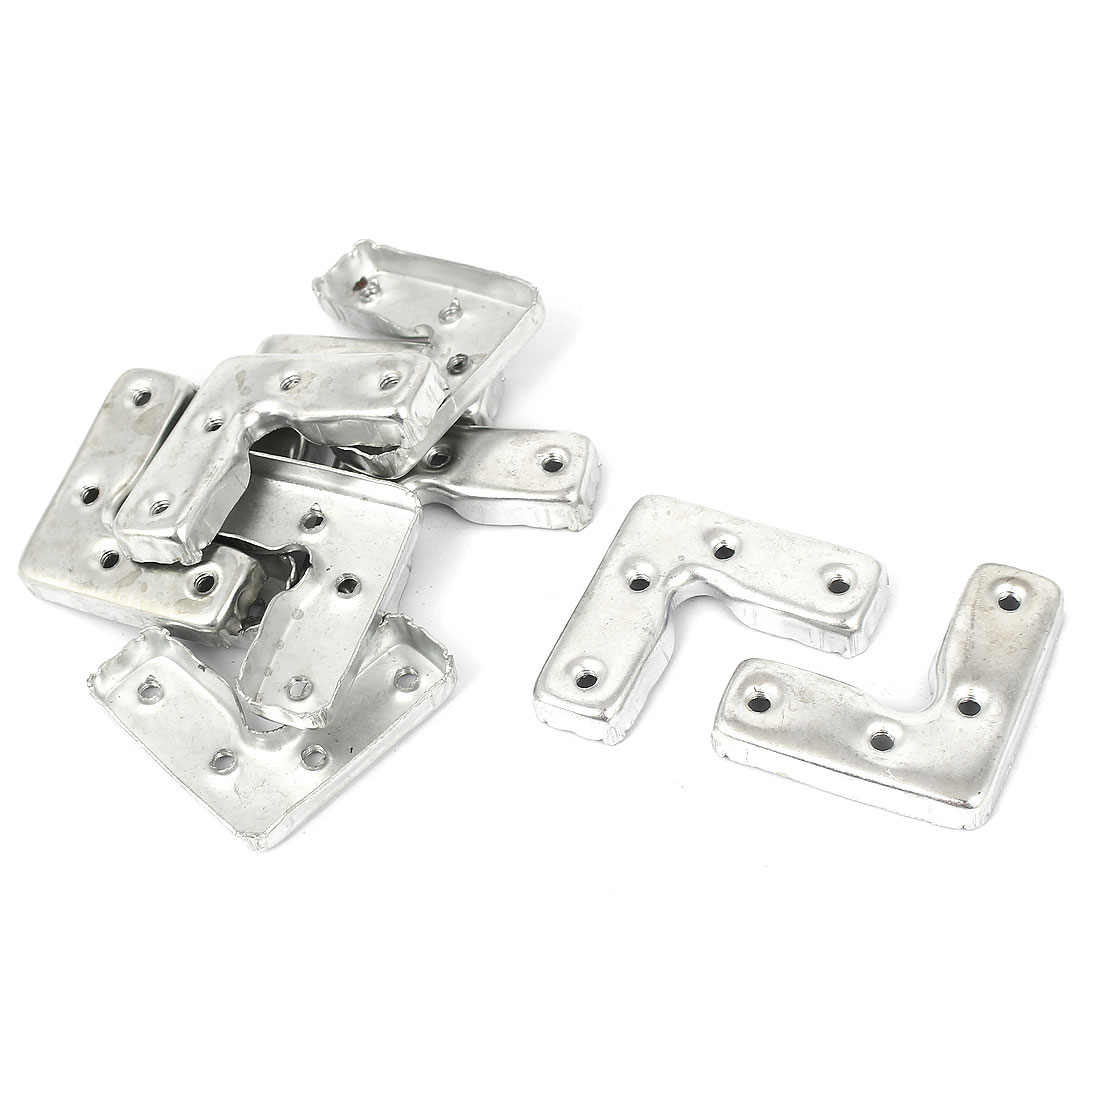 45mm x 45mm x 16mm Corner Brace Joint Right Angle Bracket 10 Pcs